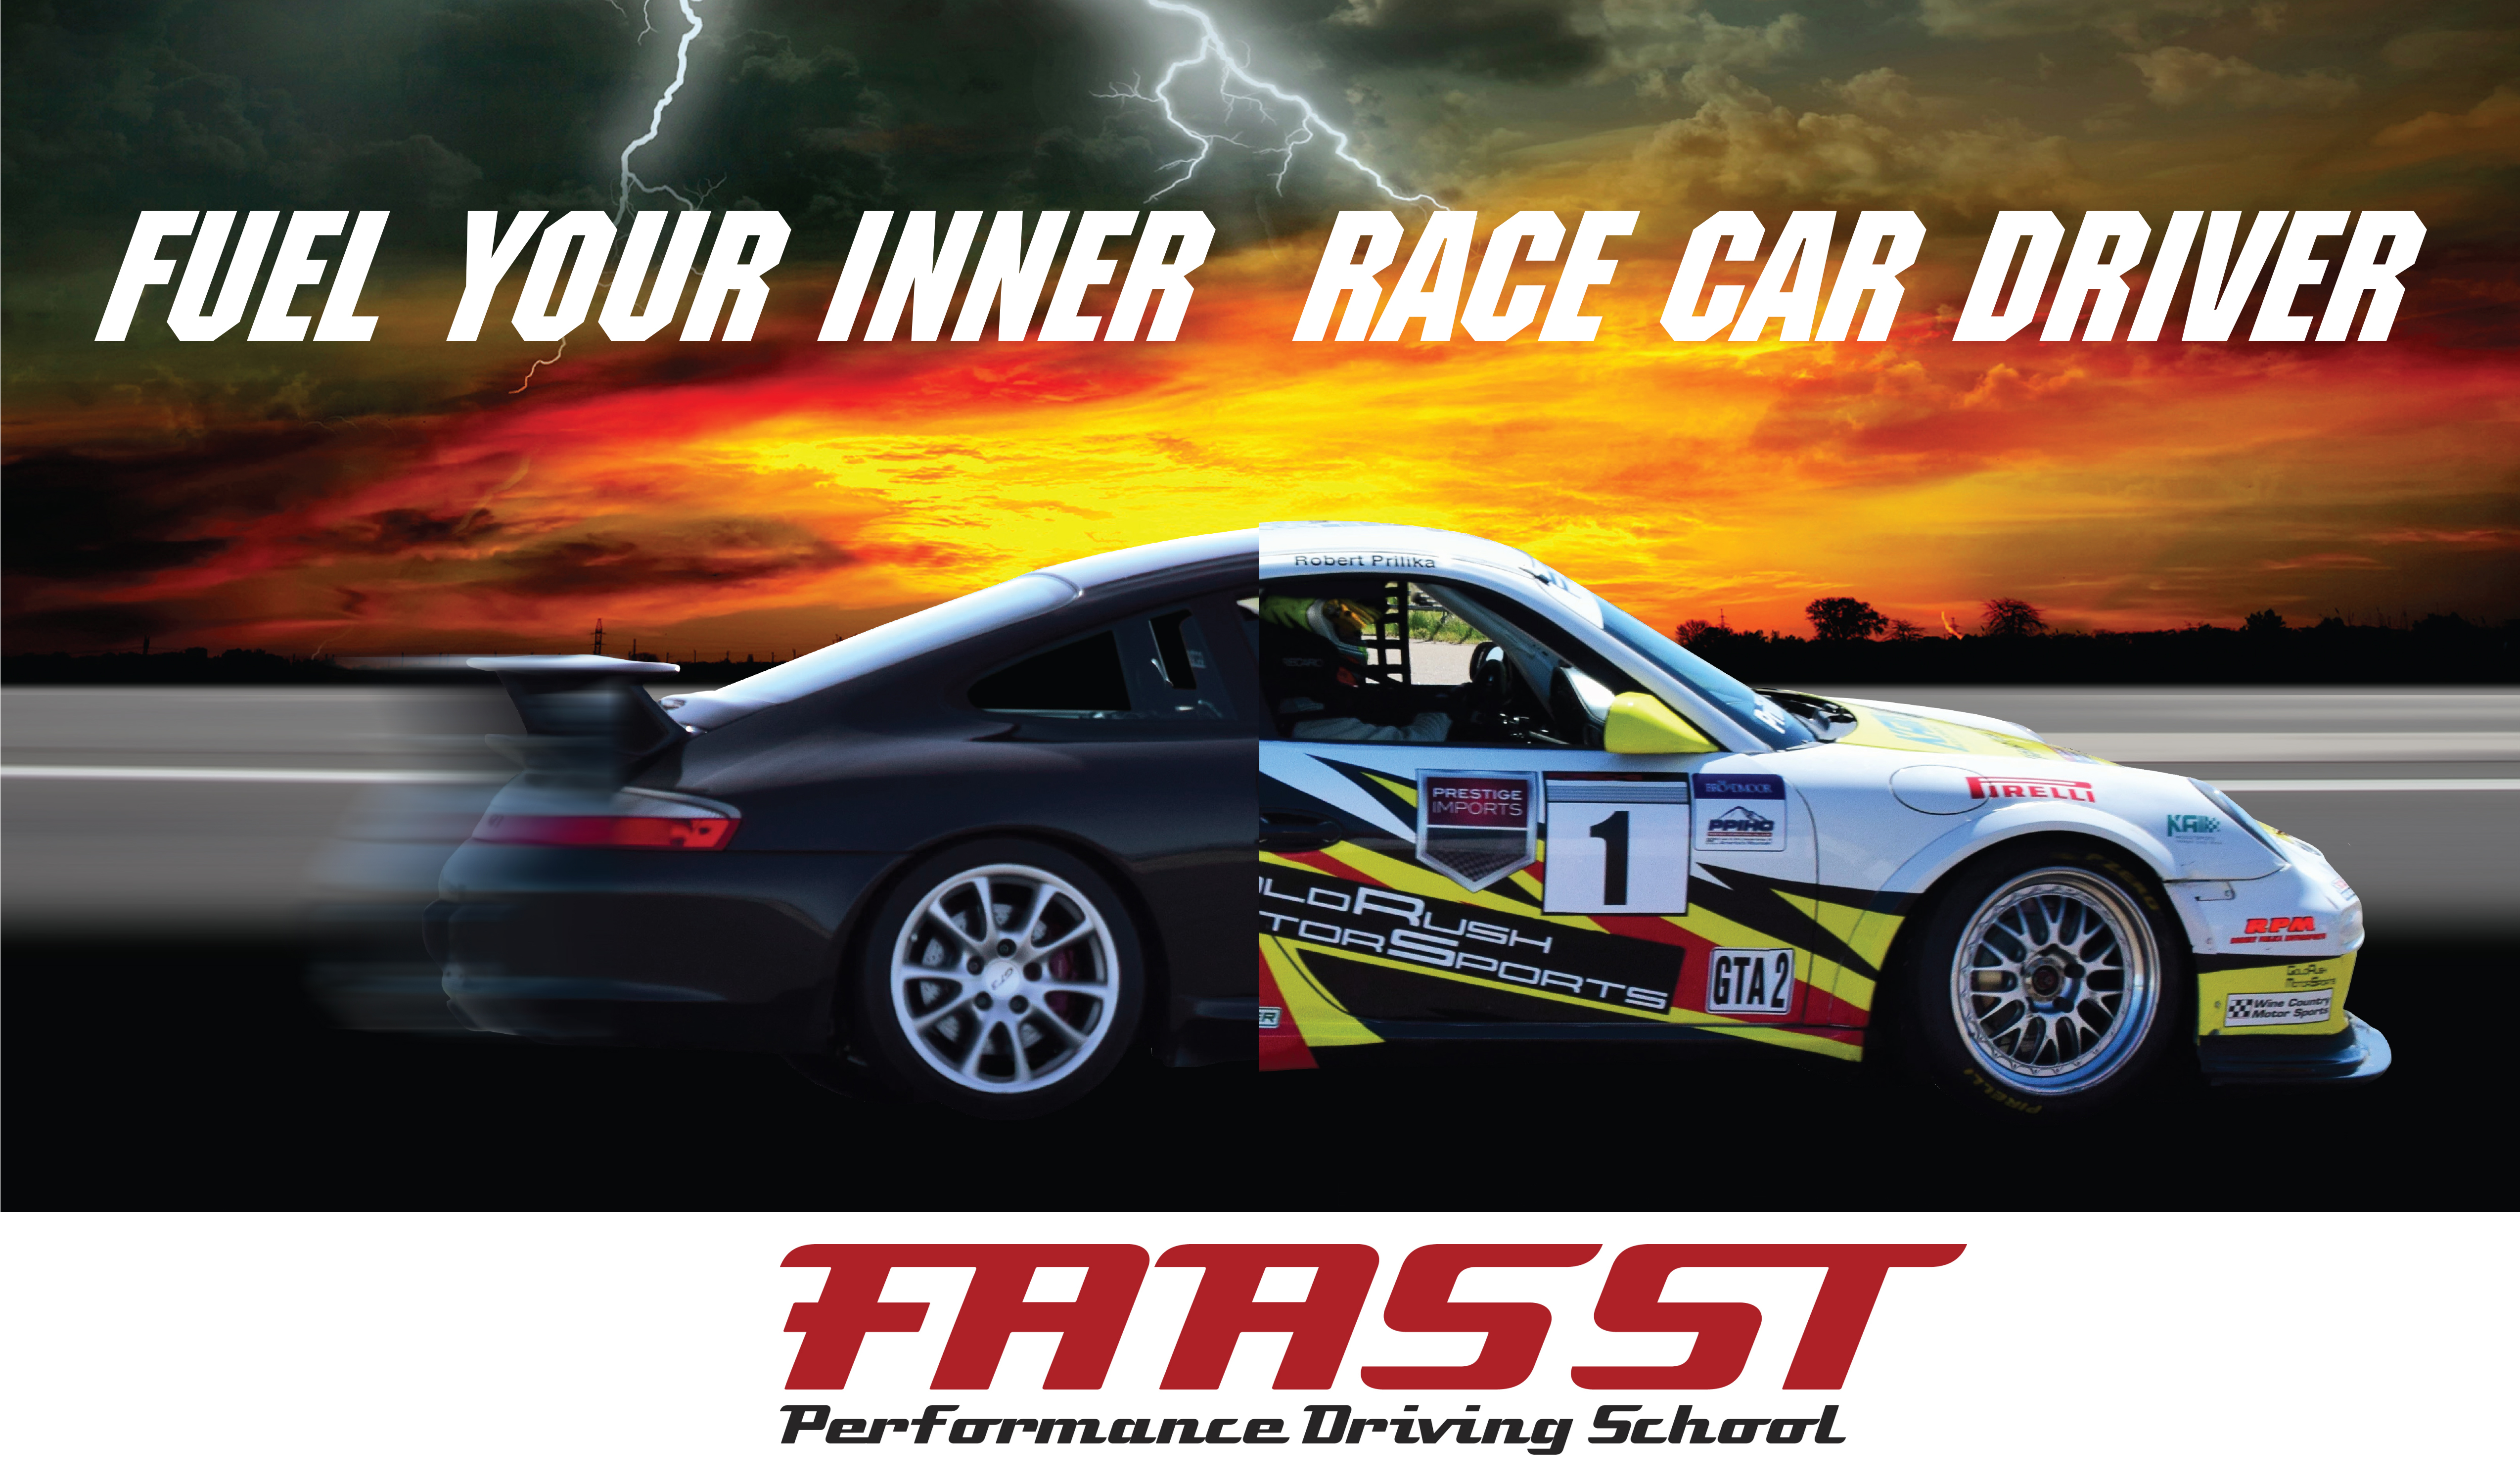 Faasst Performance Driving School Colorado